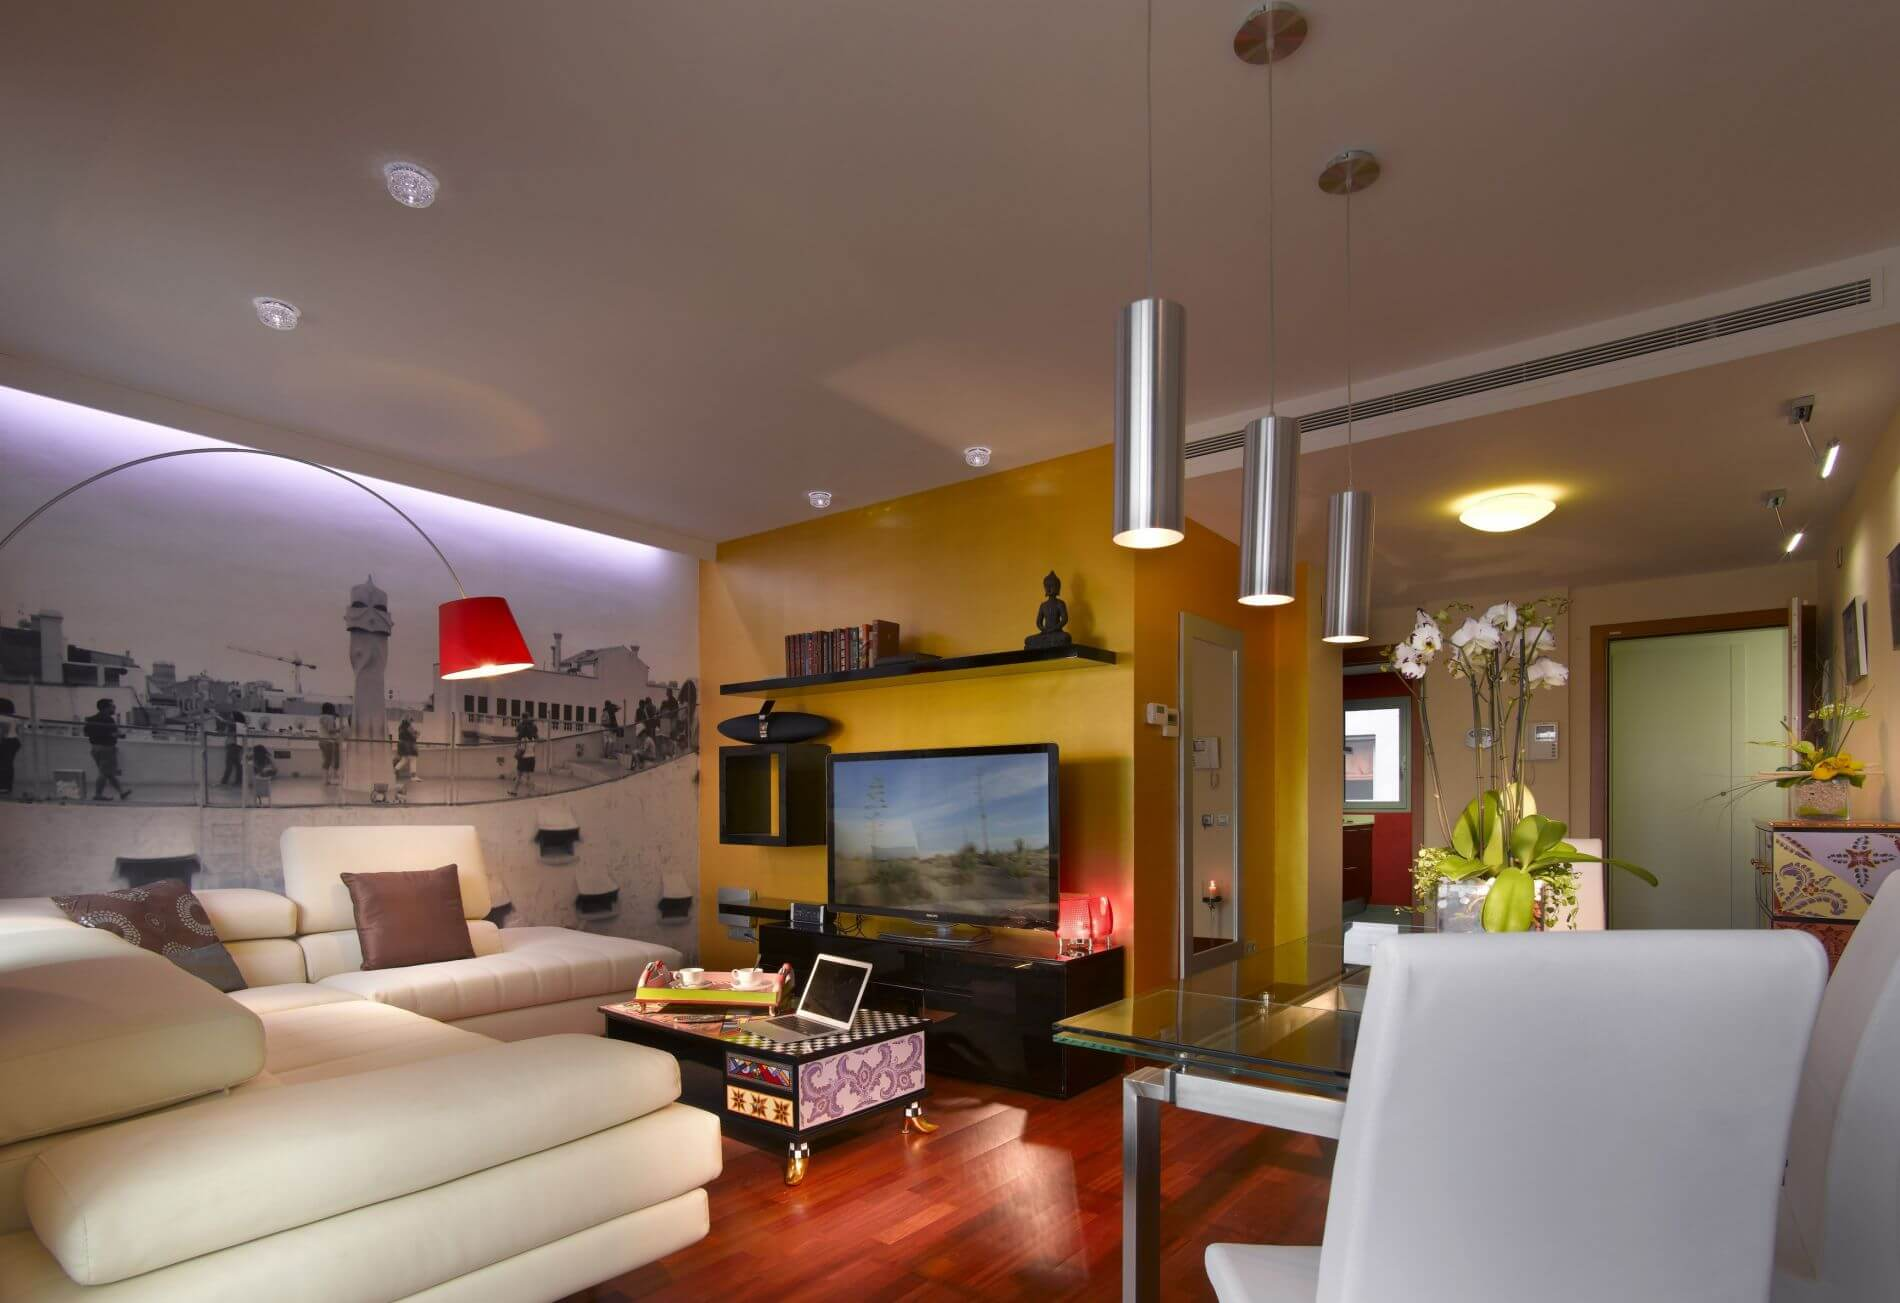 Exclusive furnished residential property in Barcelona that allows pets